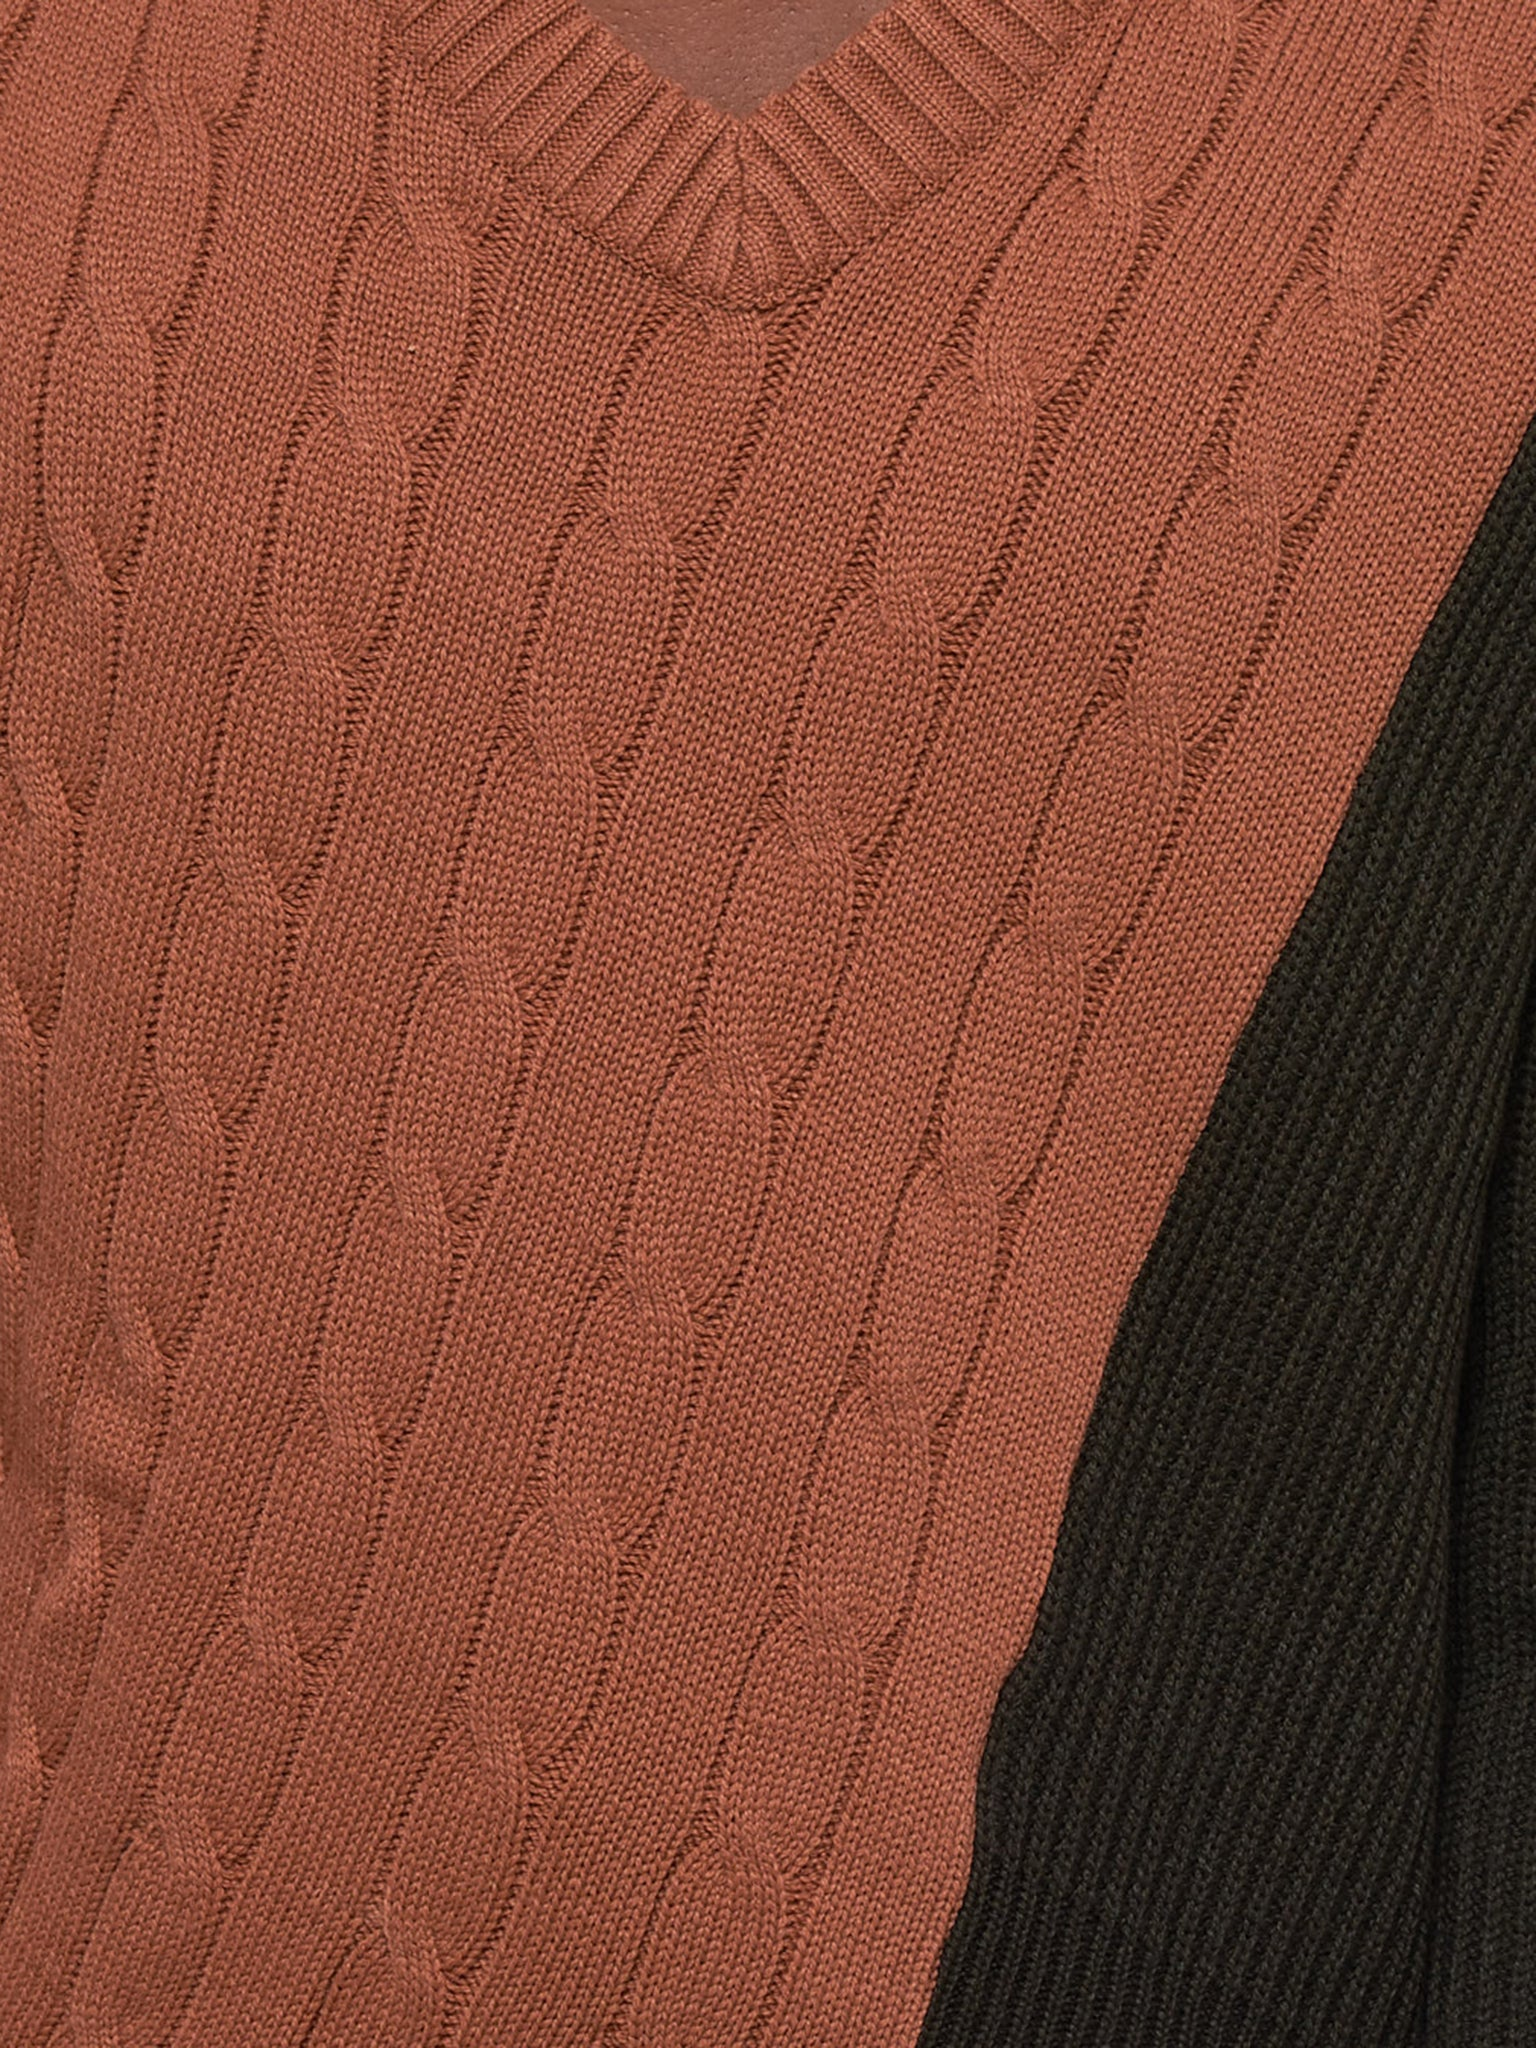 Delada Sweater - Hlorenzo Detail 2